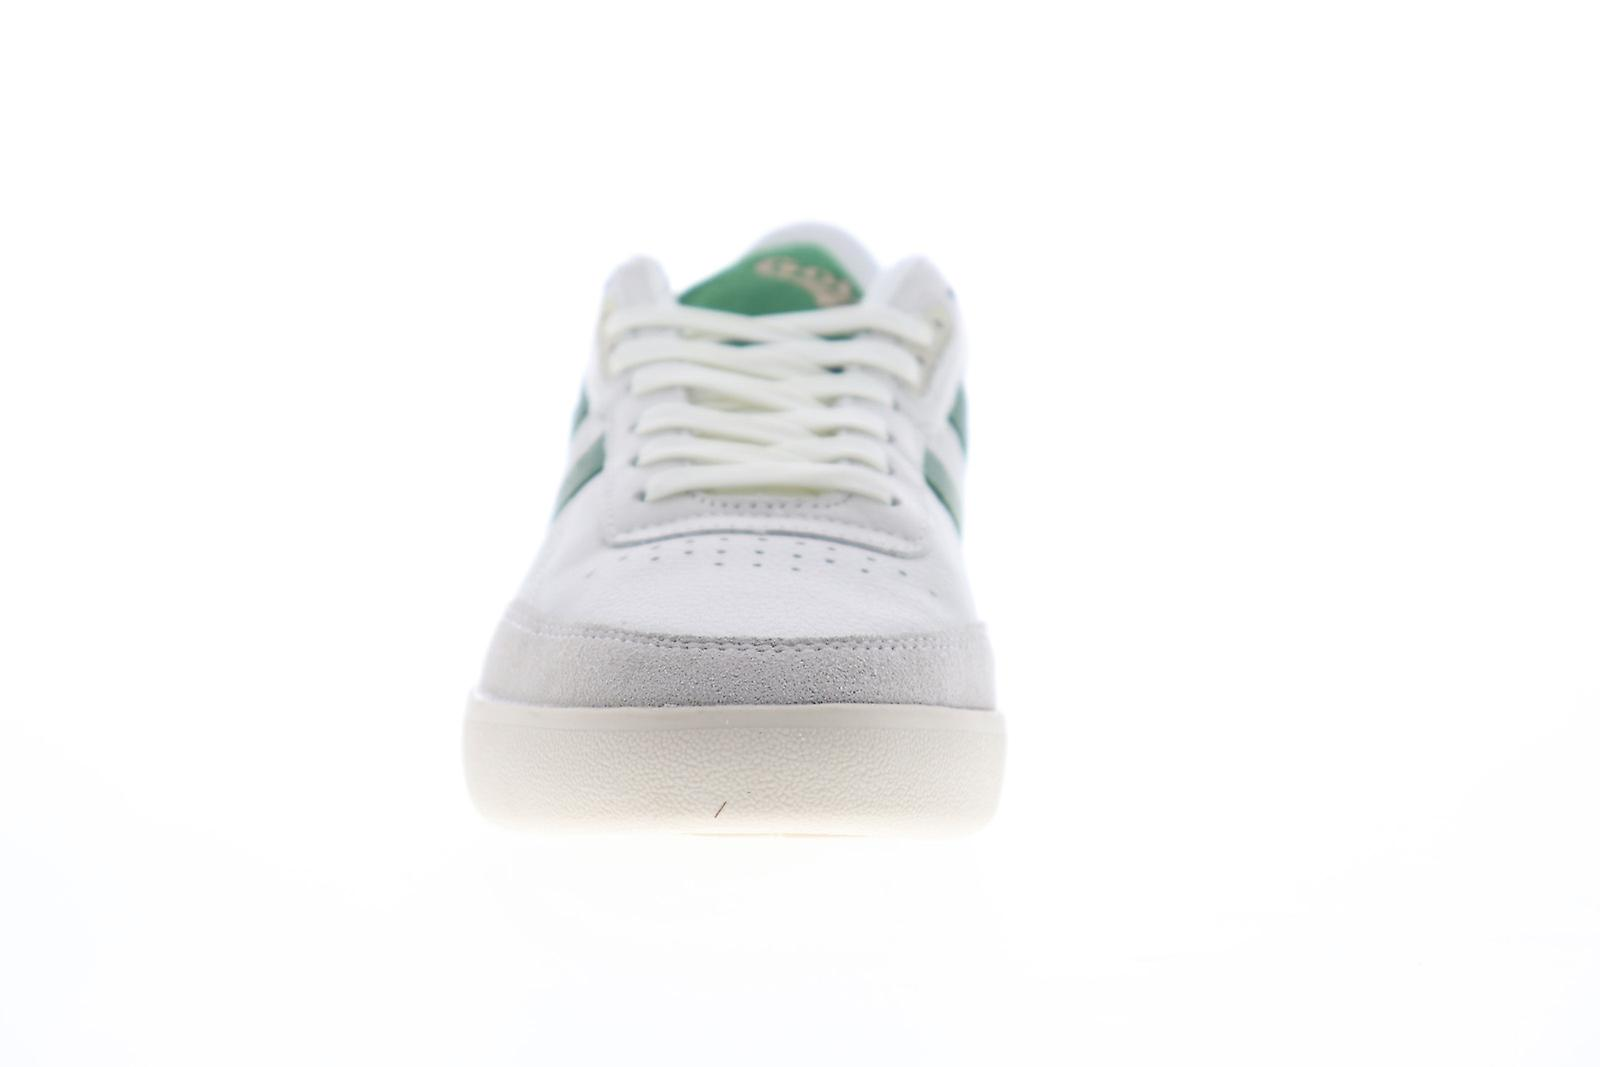 Chaussures Gola Inca Leather Mens White Lace Up Low Top Sneakers